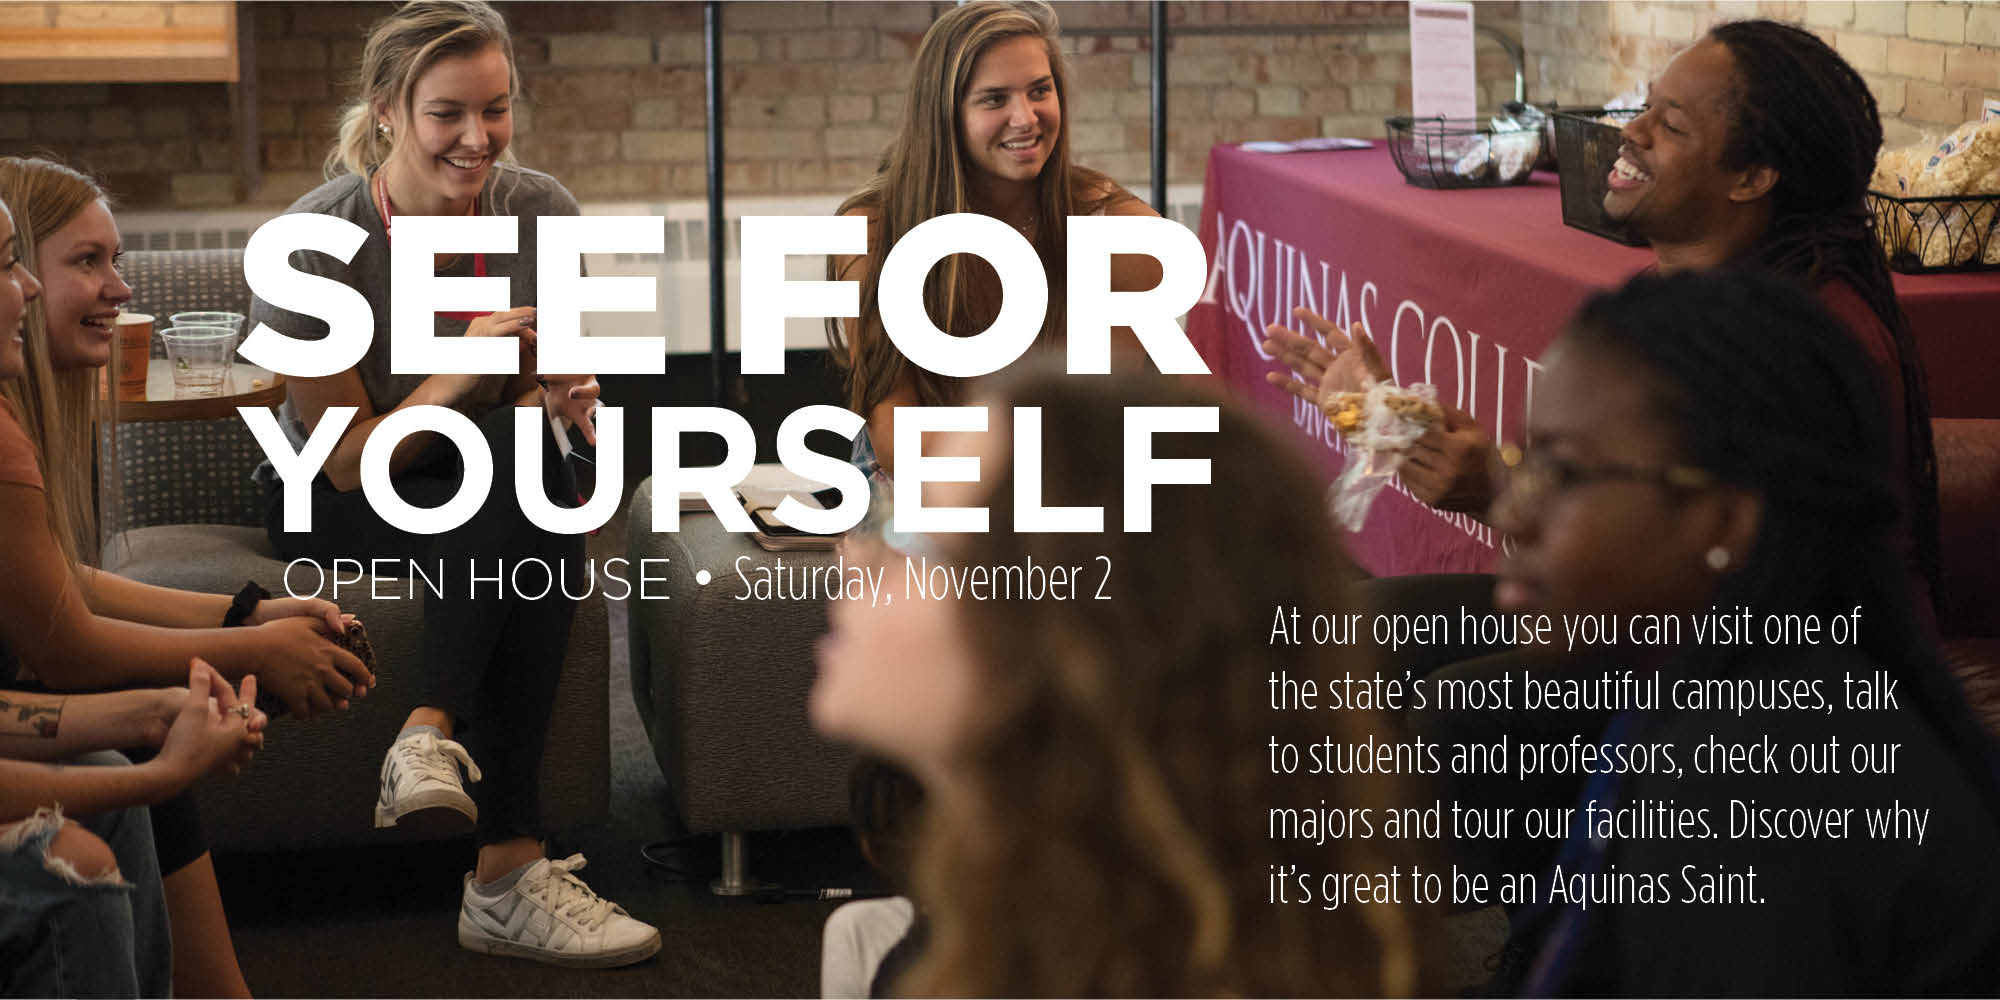 See for yourself; Open House - Saturday, November 2, At our open house you can visit one of the state's most beautiful campuses, talk to studetns and professors, check our majors and tour our facilities. Discover why its's great to be an Aquinas Saint